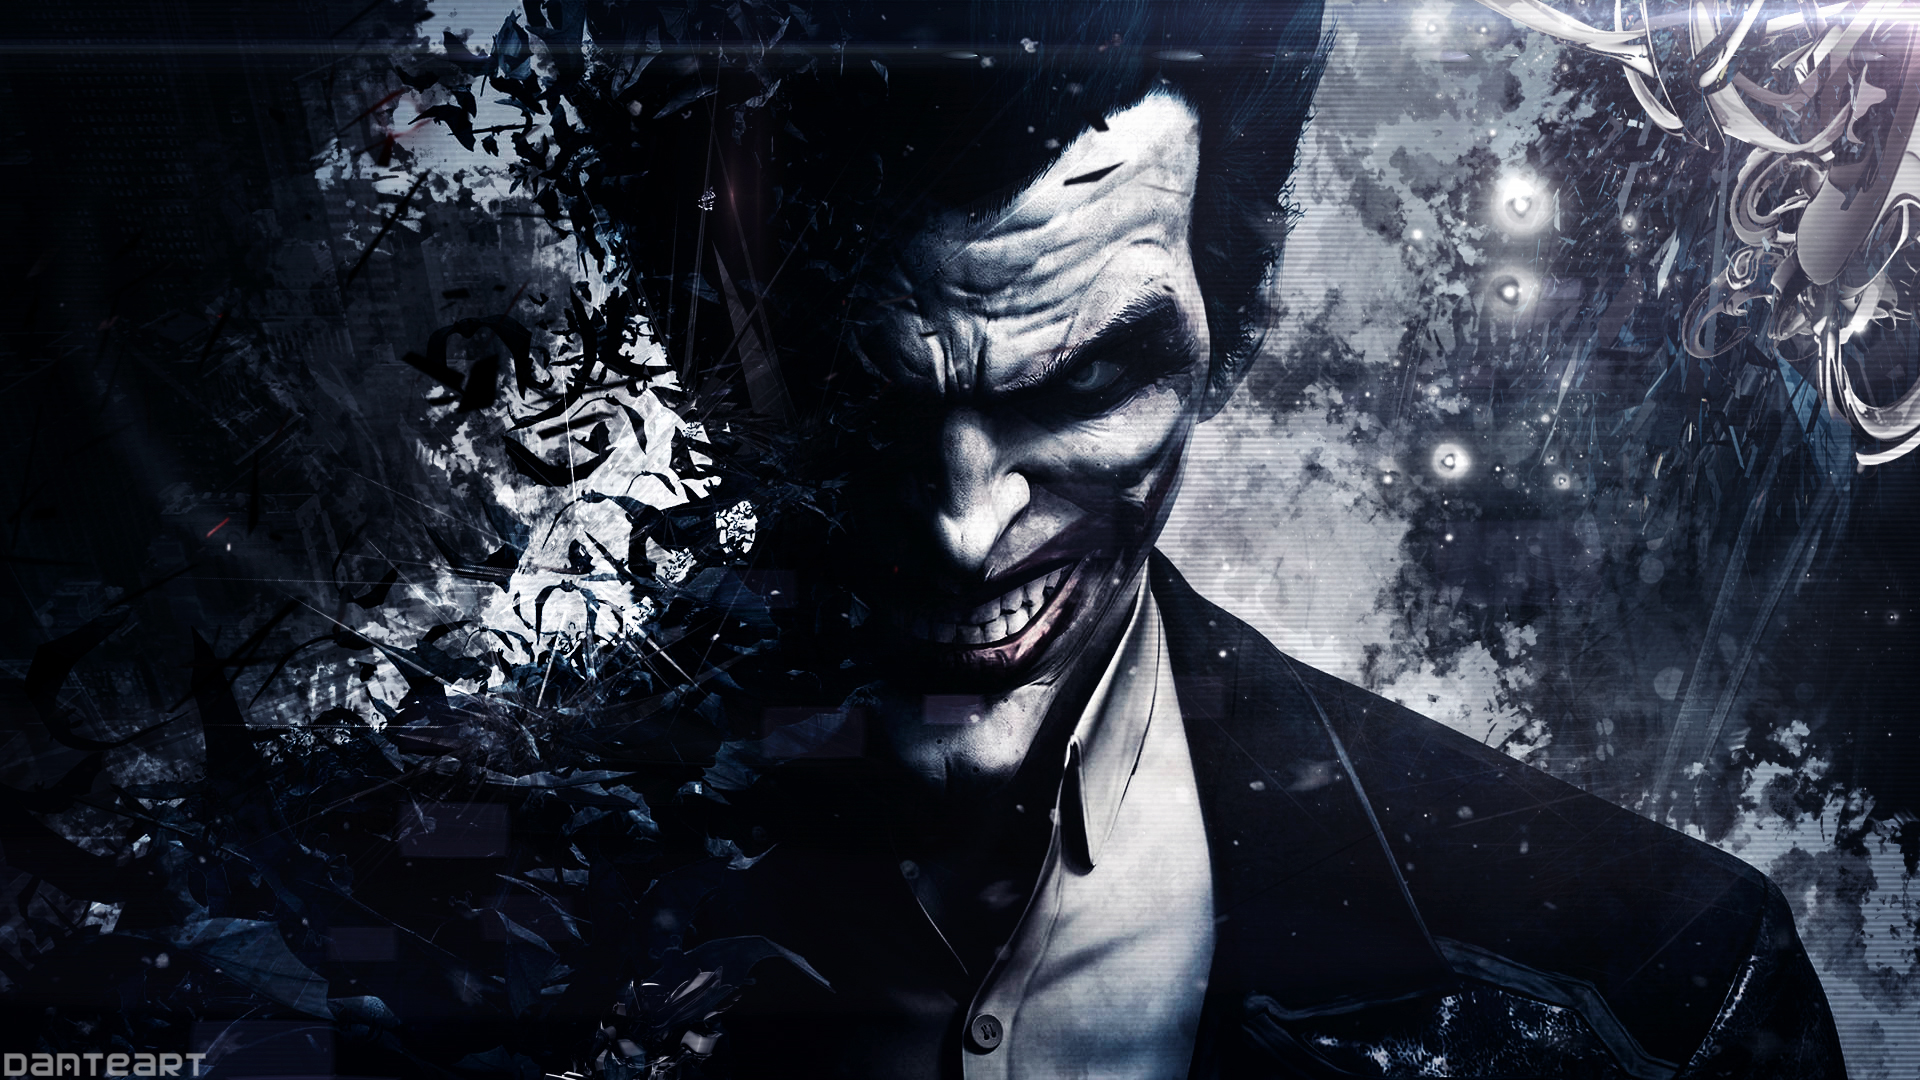 Batman Arkham Origins Joker Wallpaper By Danteartwallpapers On